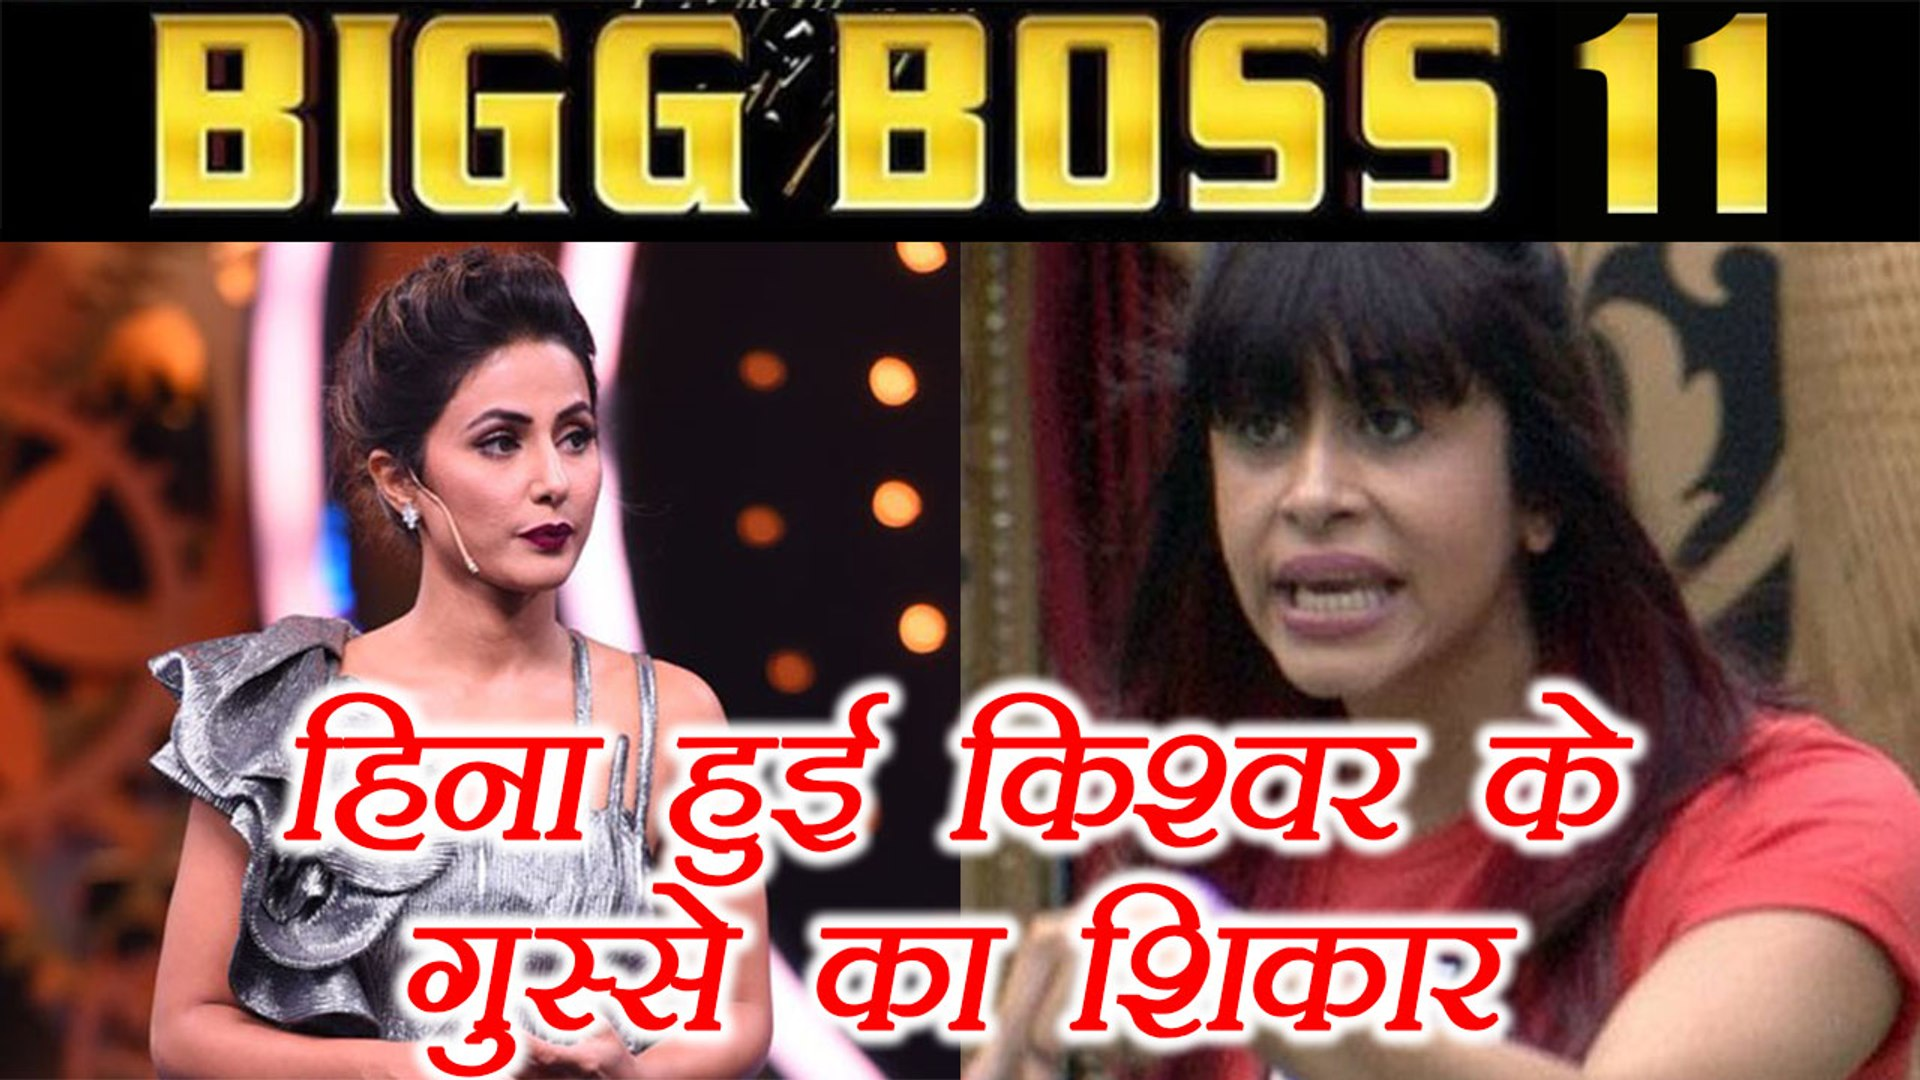 Bigg Boss 11: Kishwer Merchant REACTS to Hina Khan COMMENT | FilmiBeat